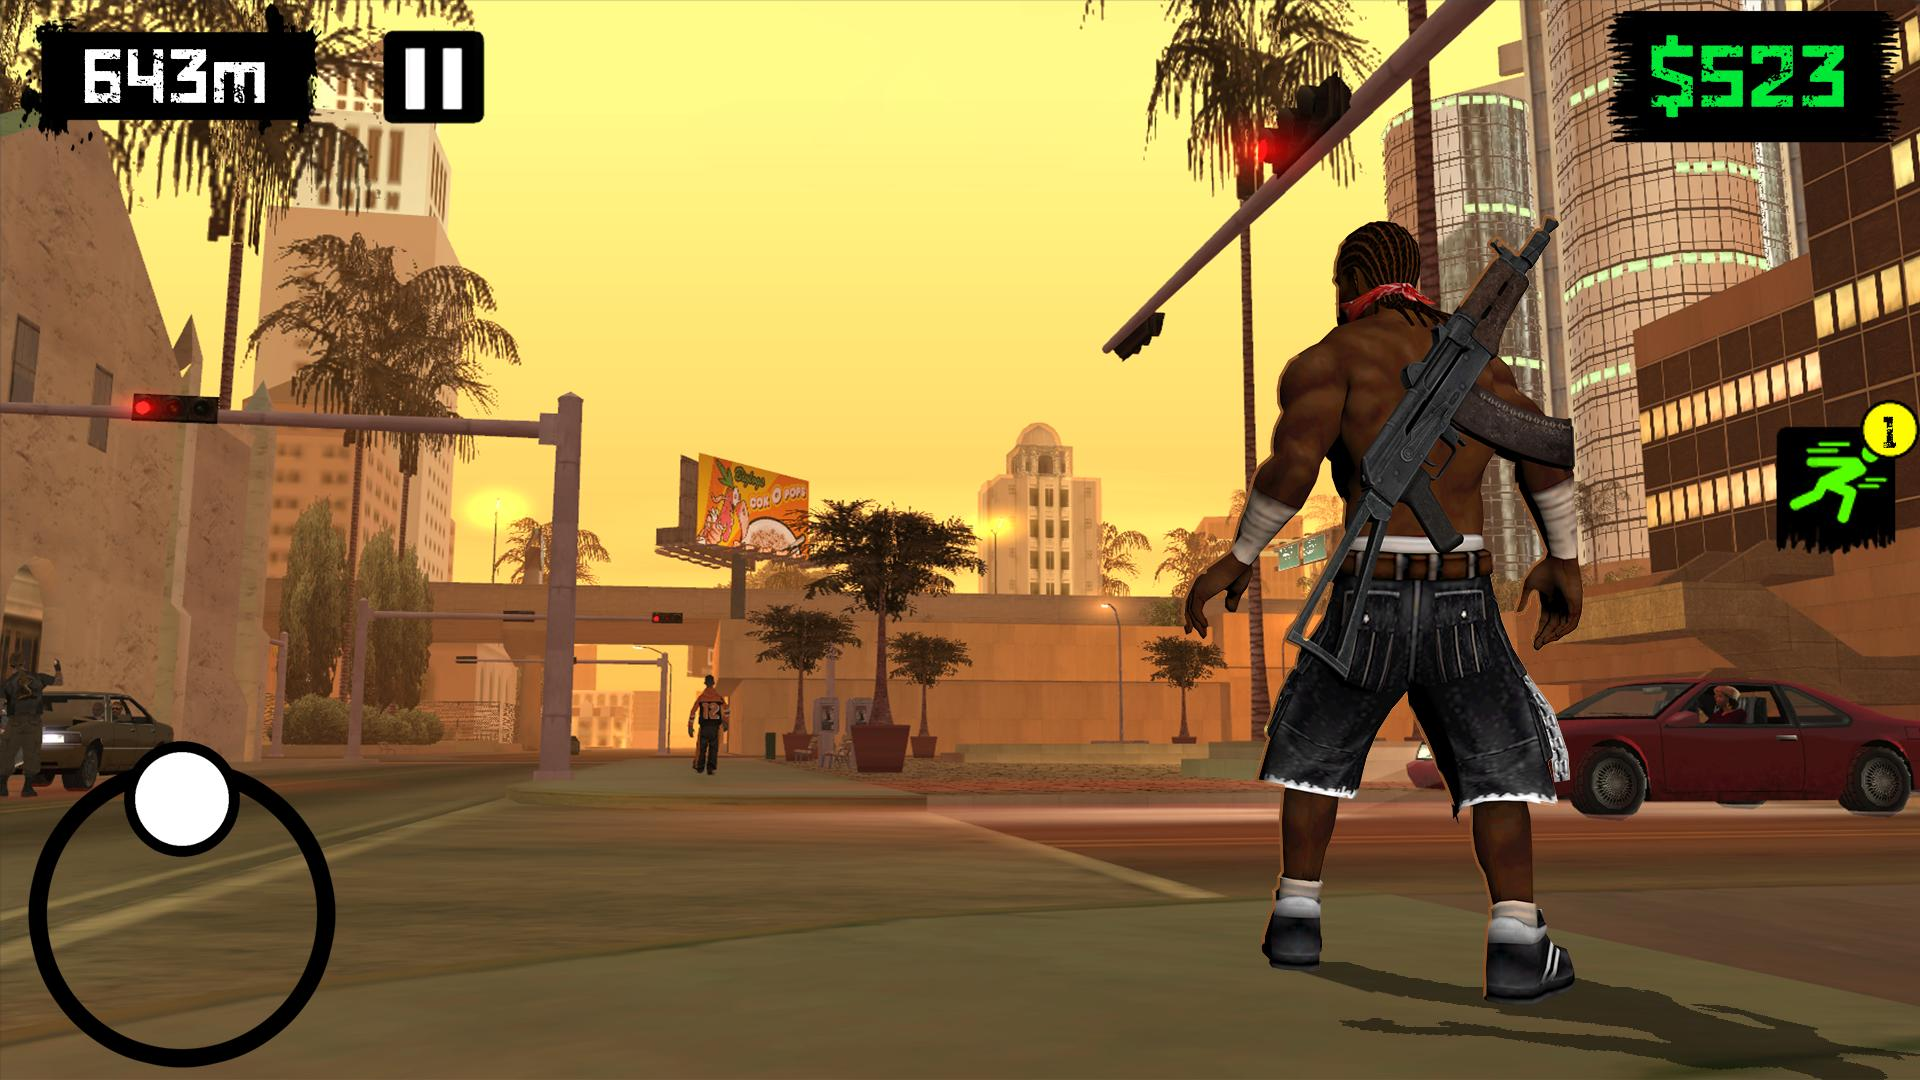 Grand Stunt Jump San Andreas for Android - APK Download